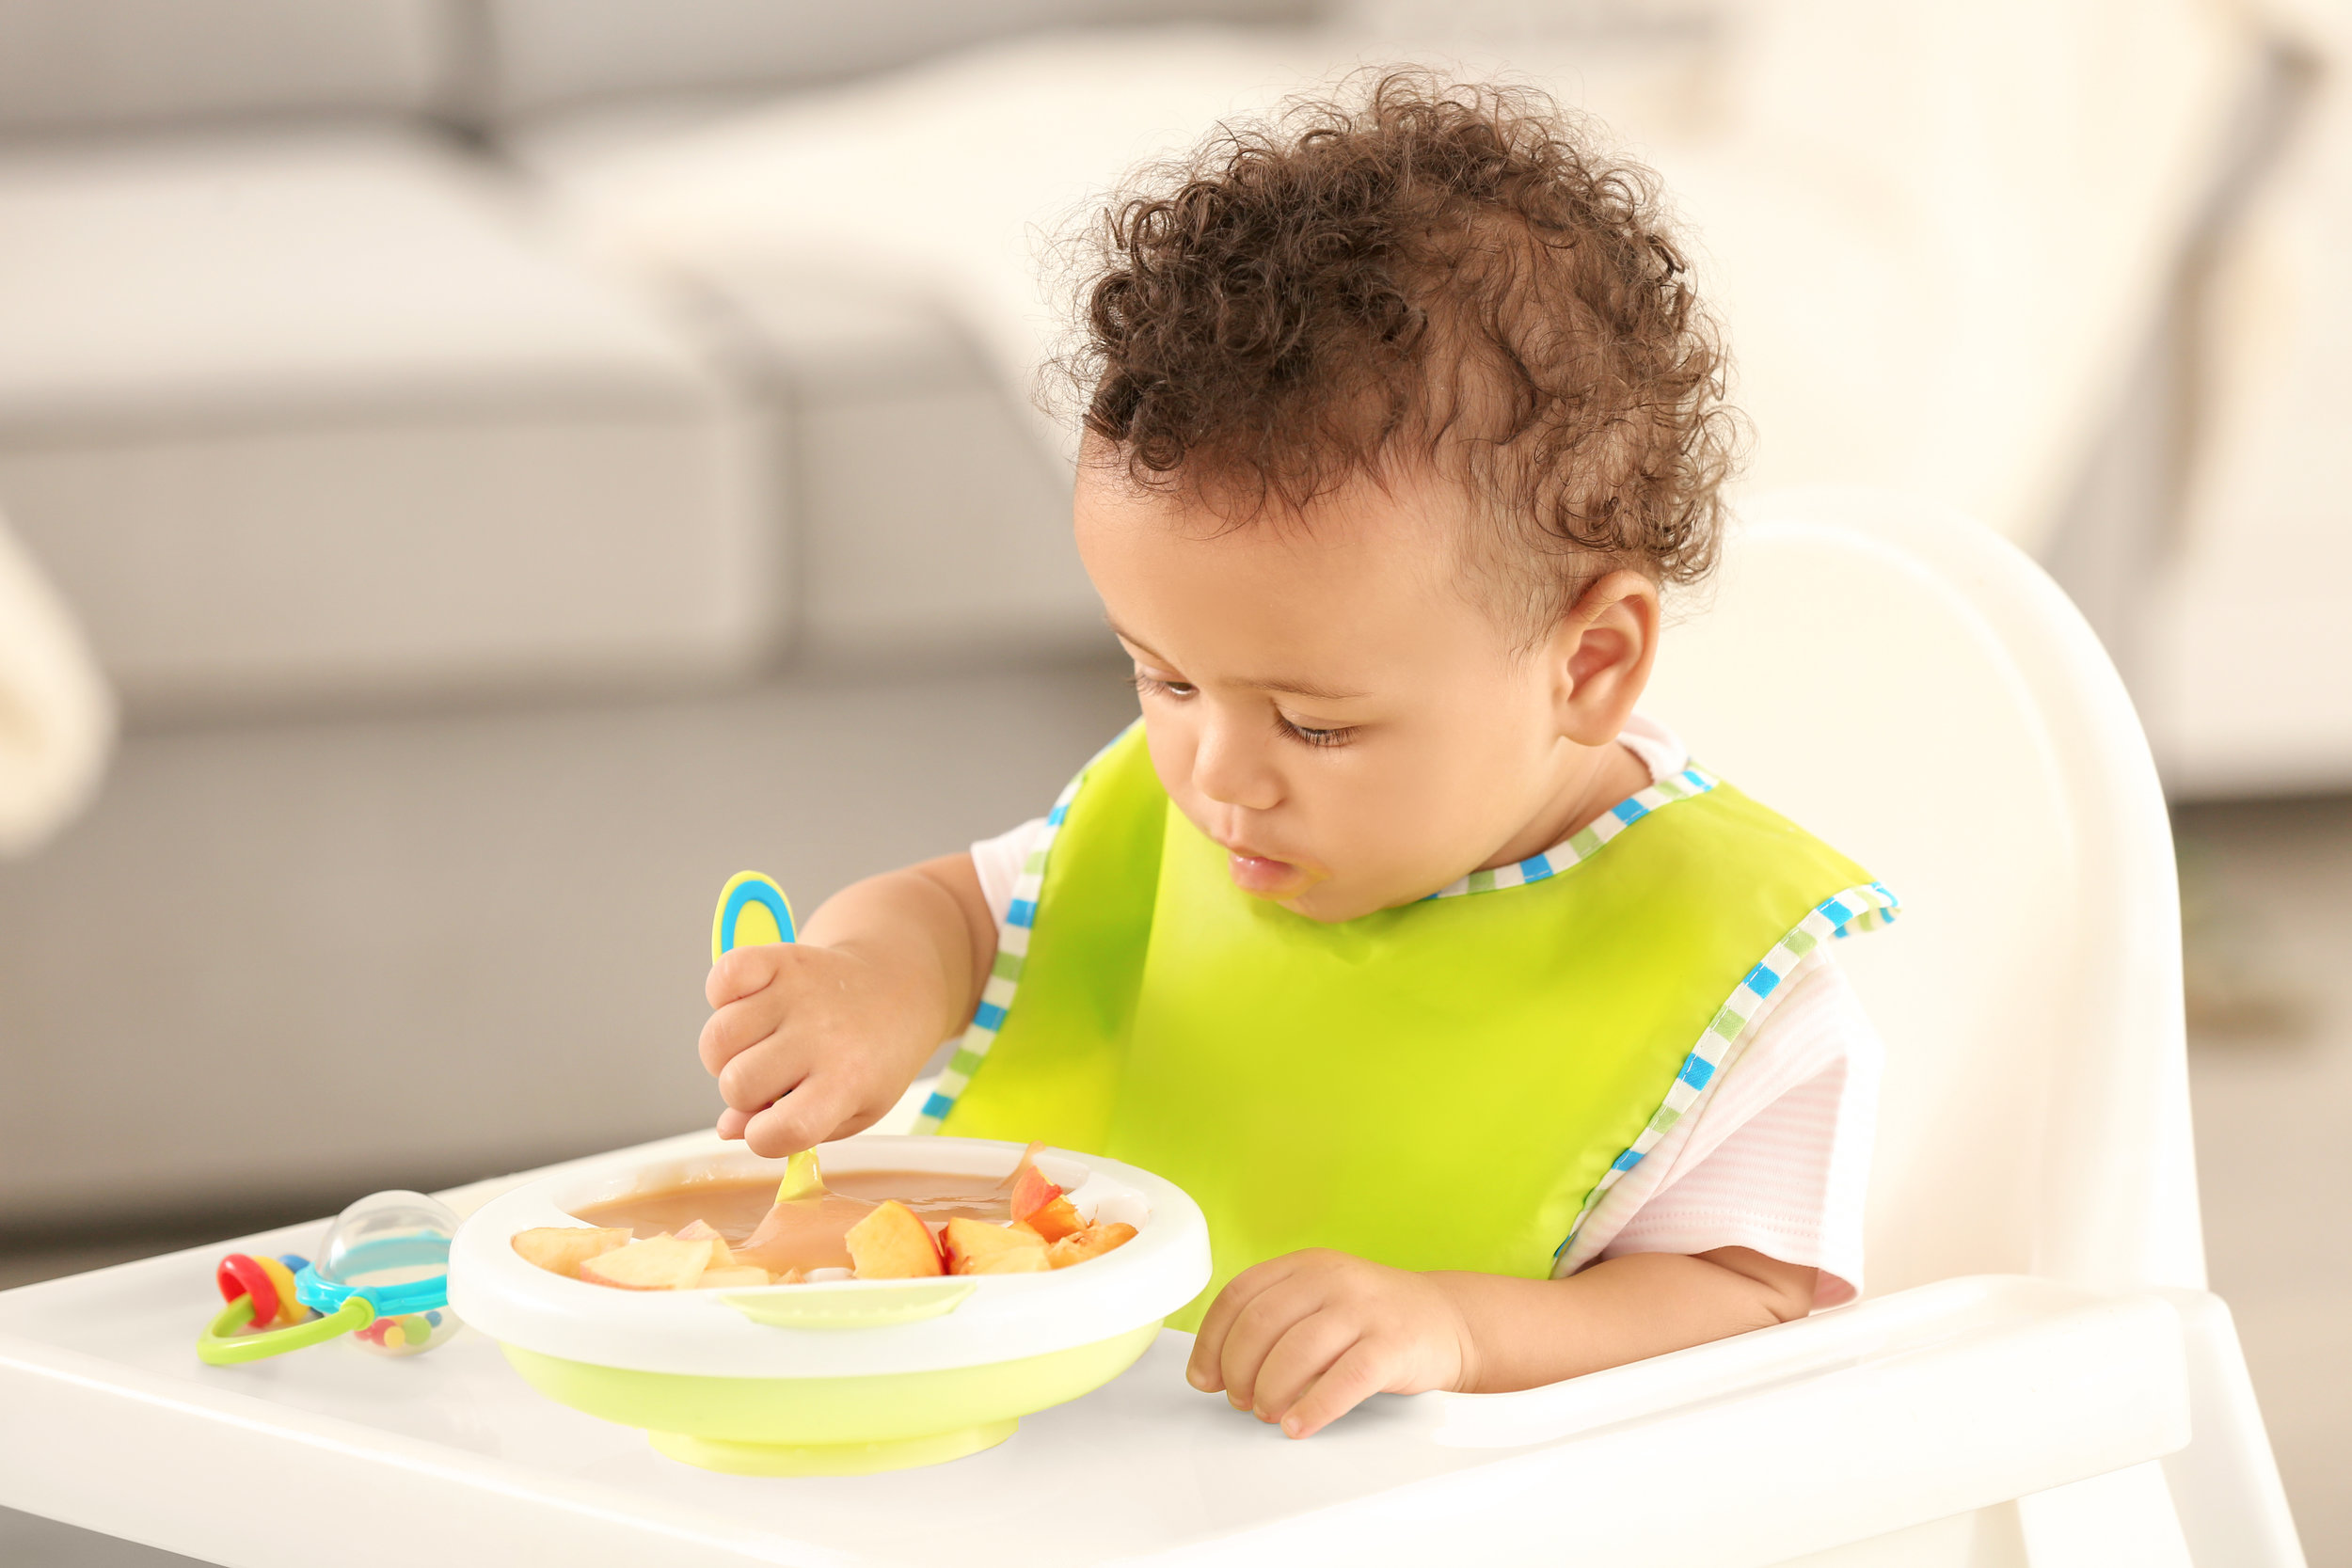 Little baby eating fruit puree indoors